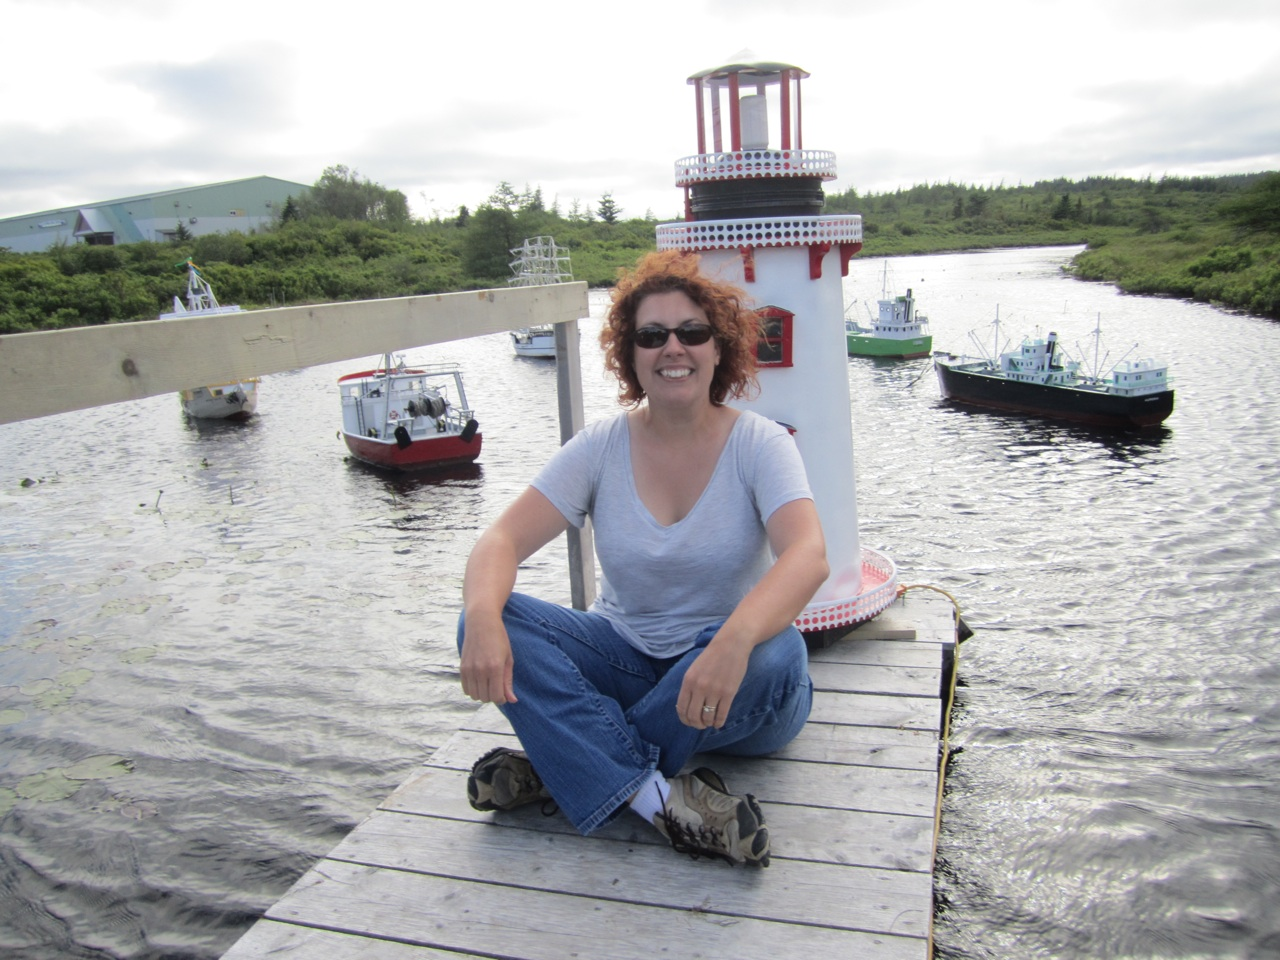 Brenda Sitting In Front Of The Miniature Lighthouse And Boats